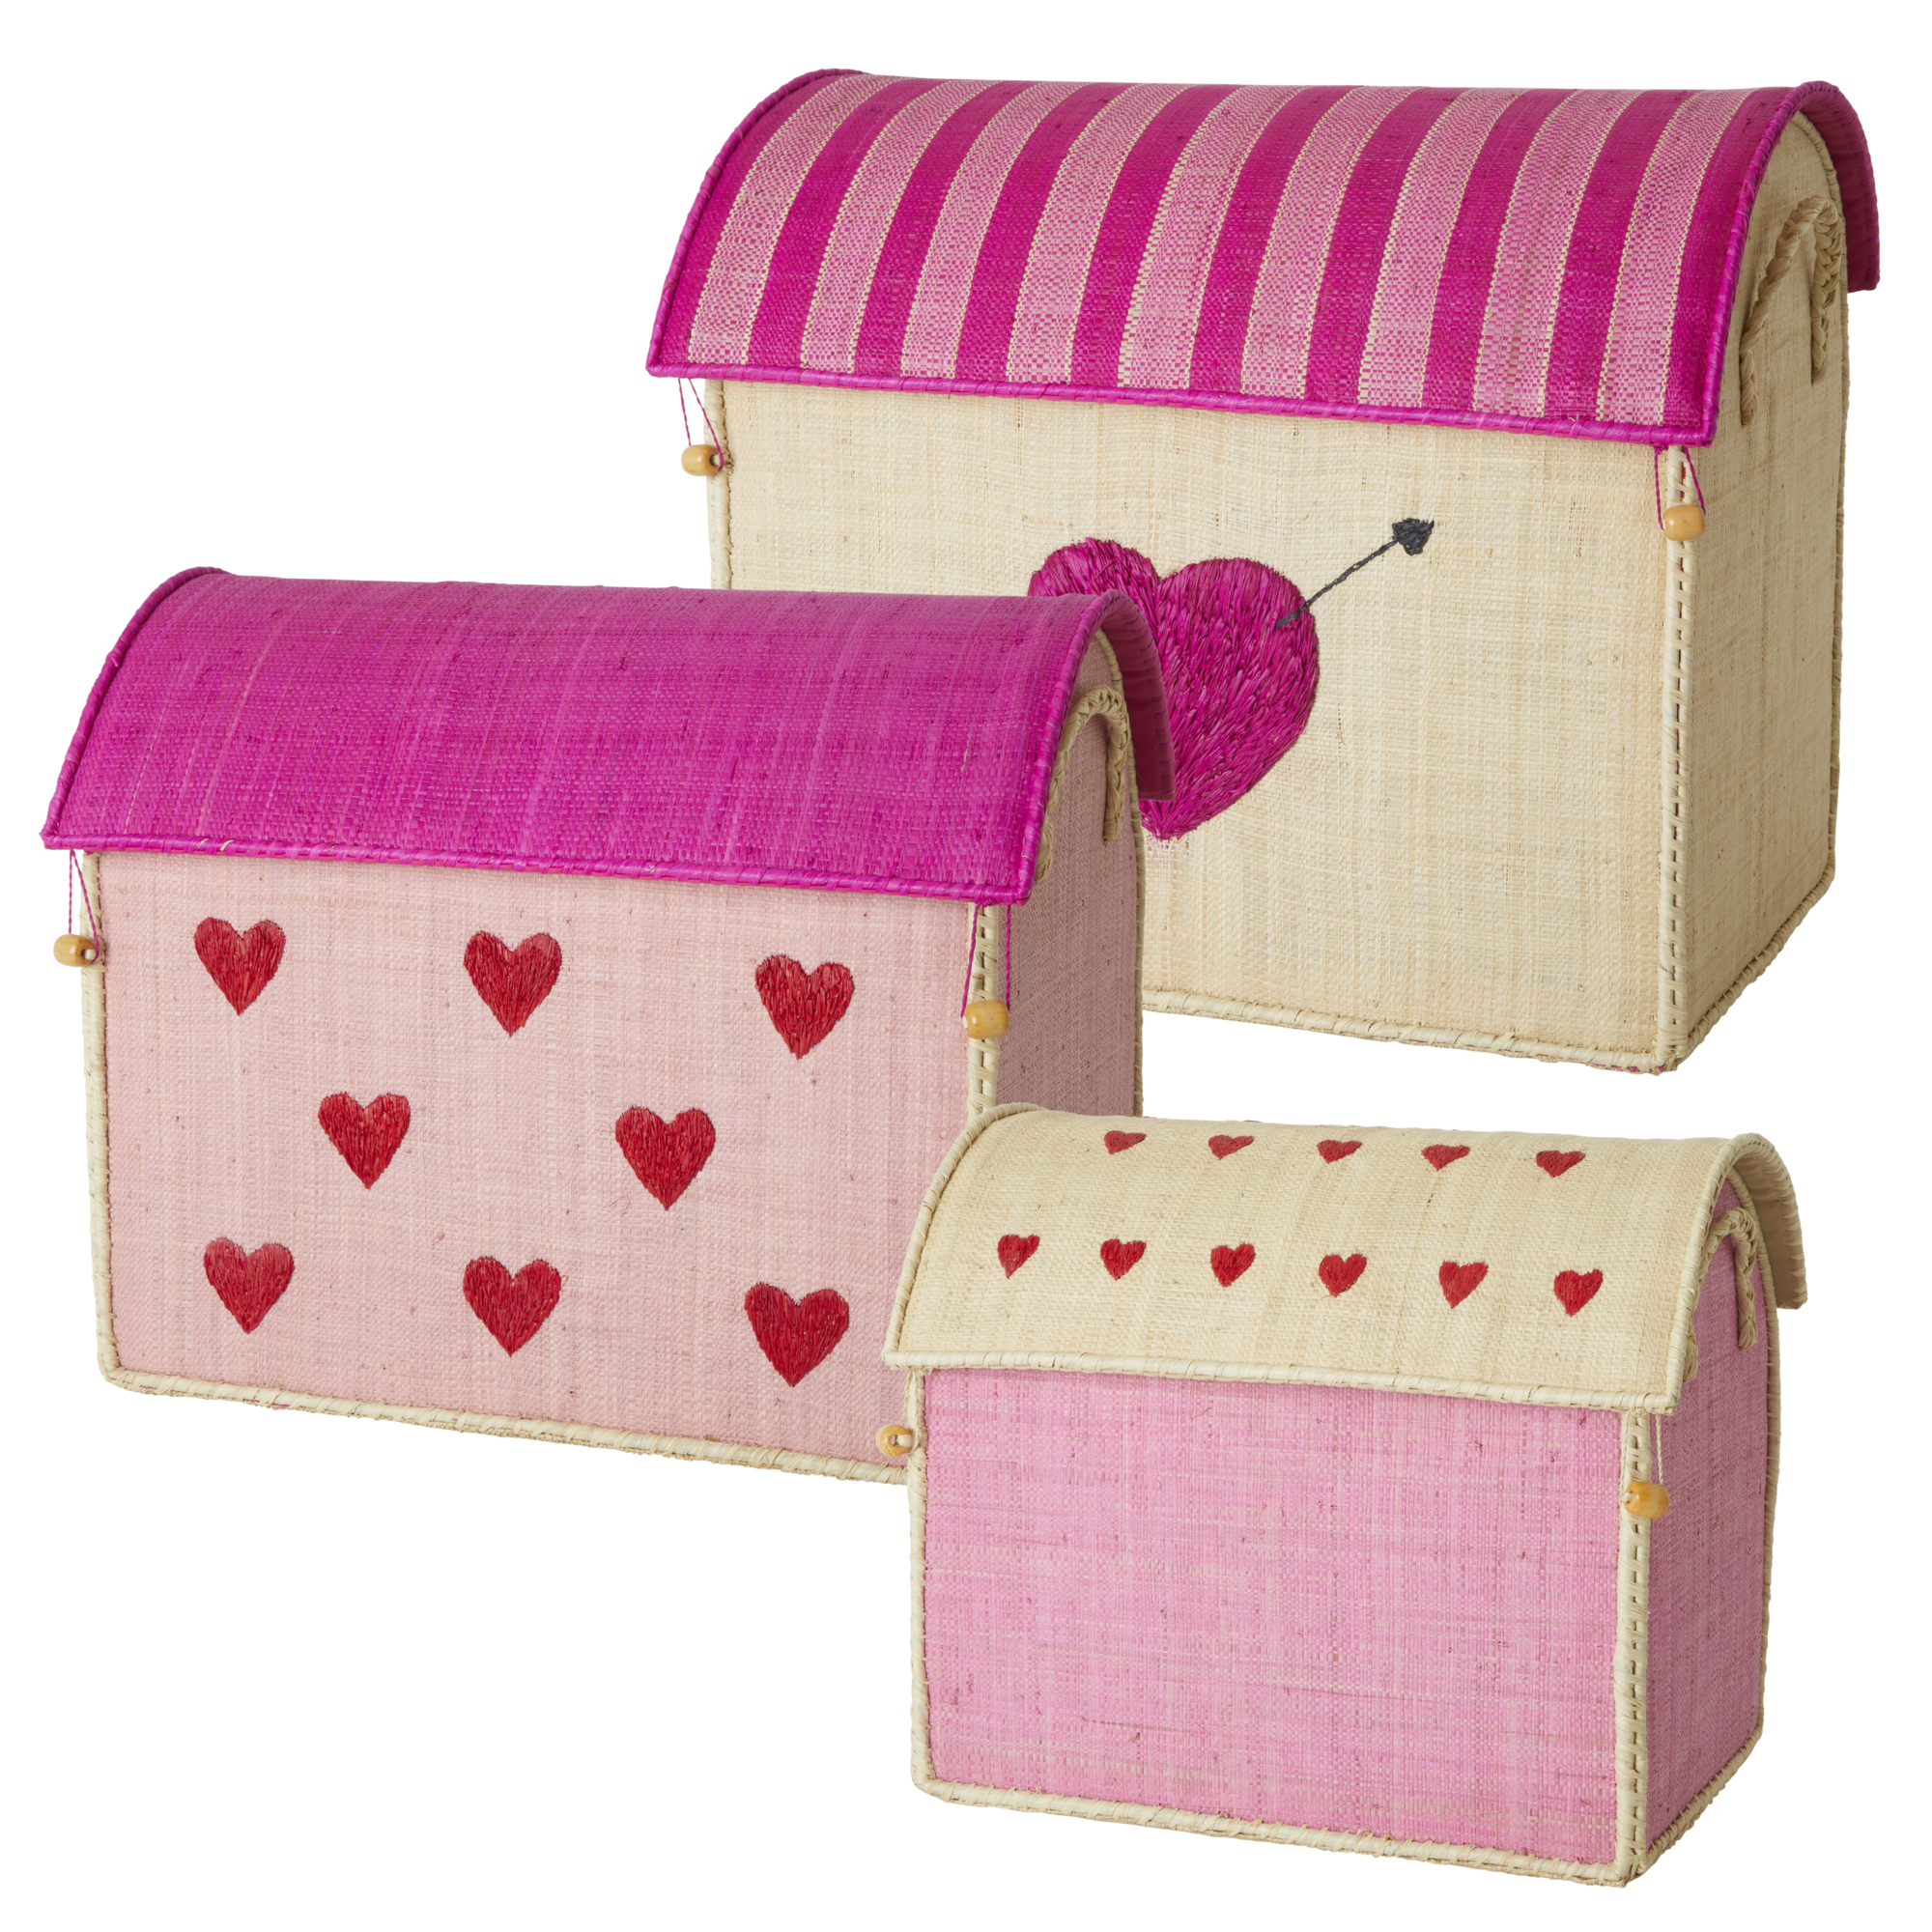 Rice - Large Set of 3 Toy Baskets - Hearts